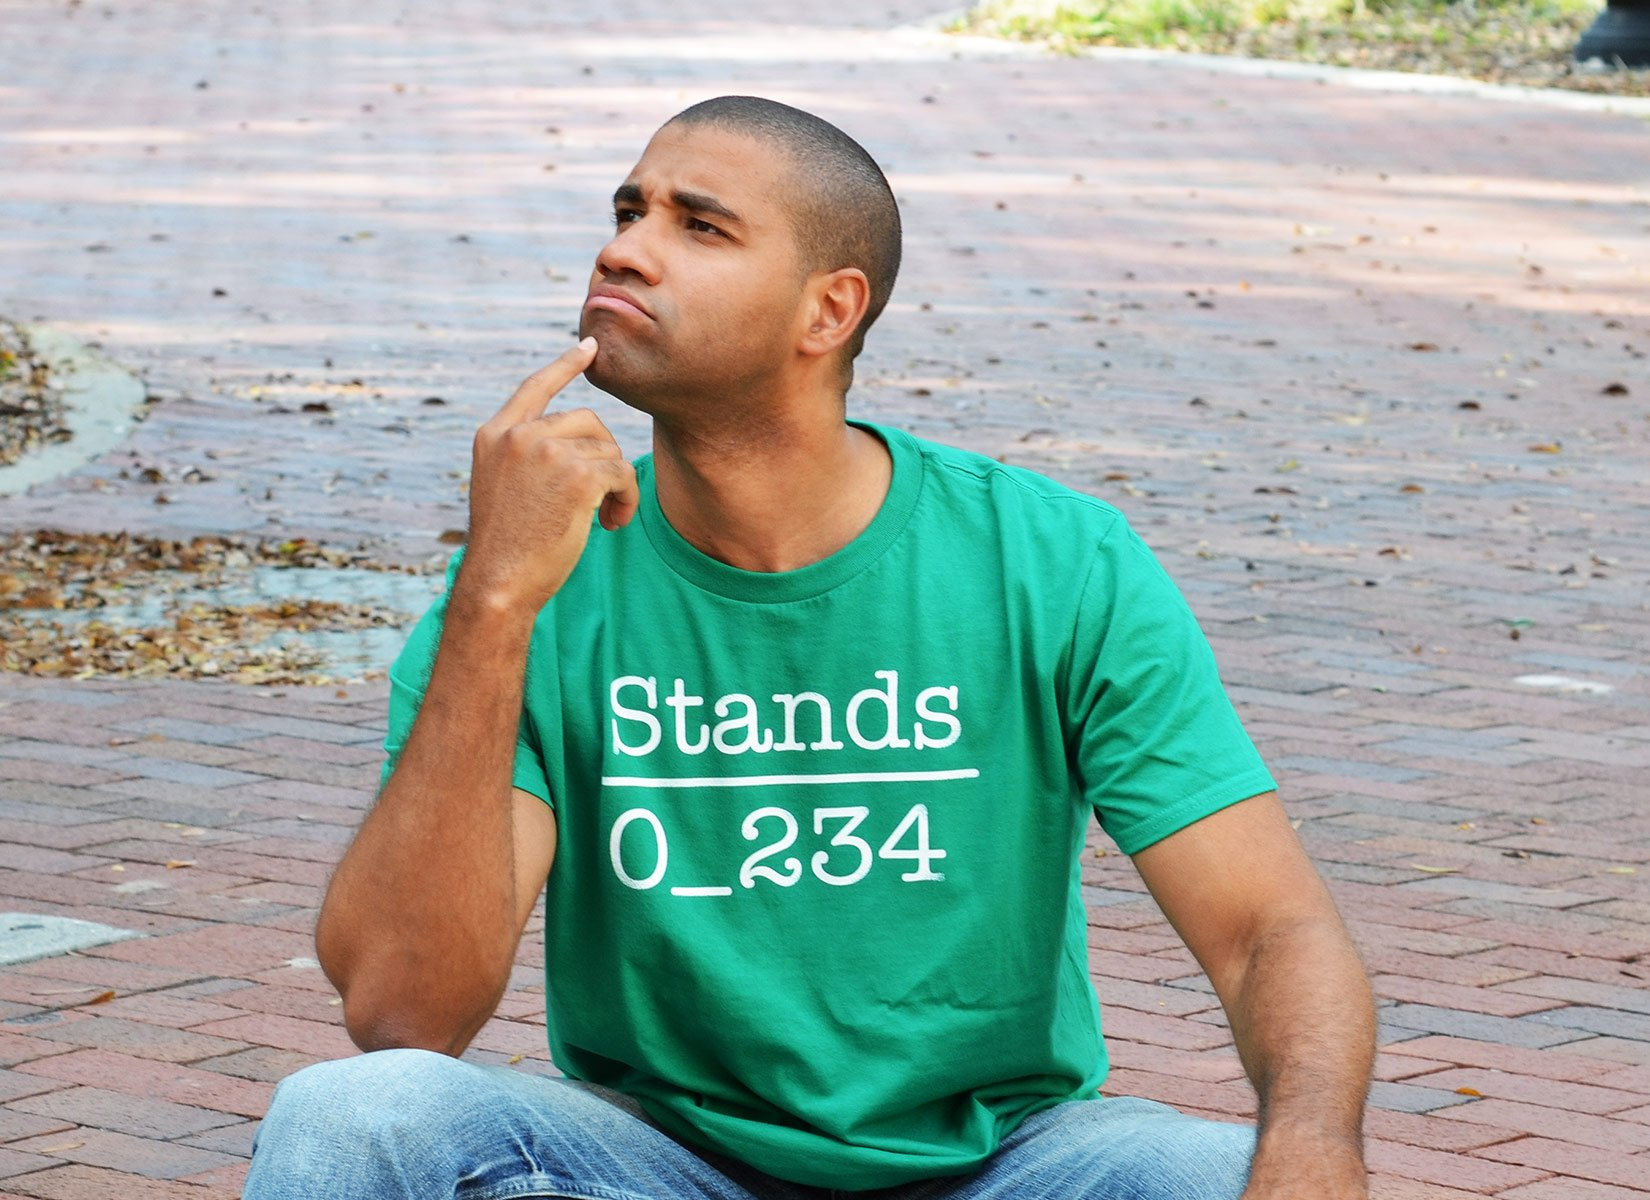 No 1 Under Stands on Mens T-Shirt